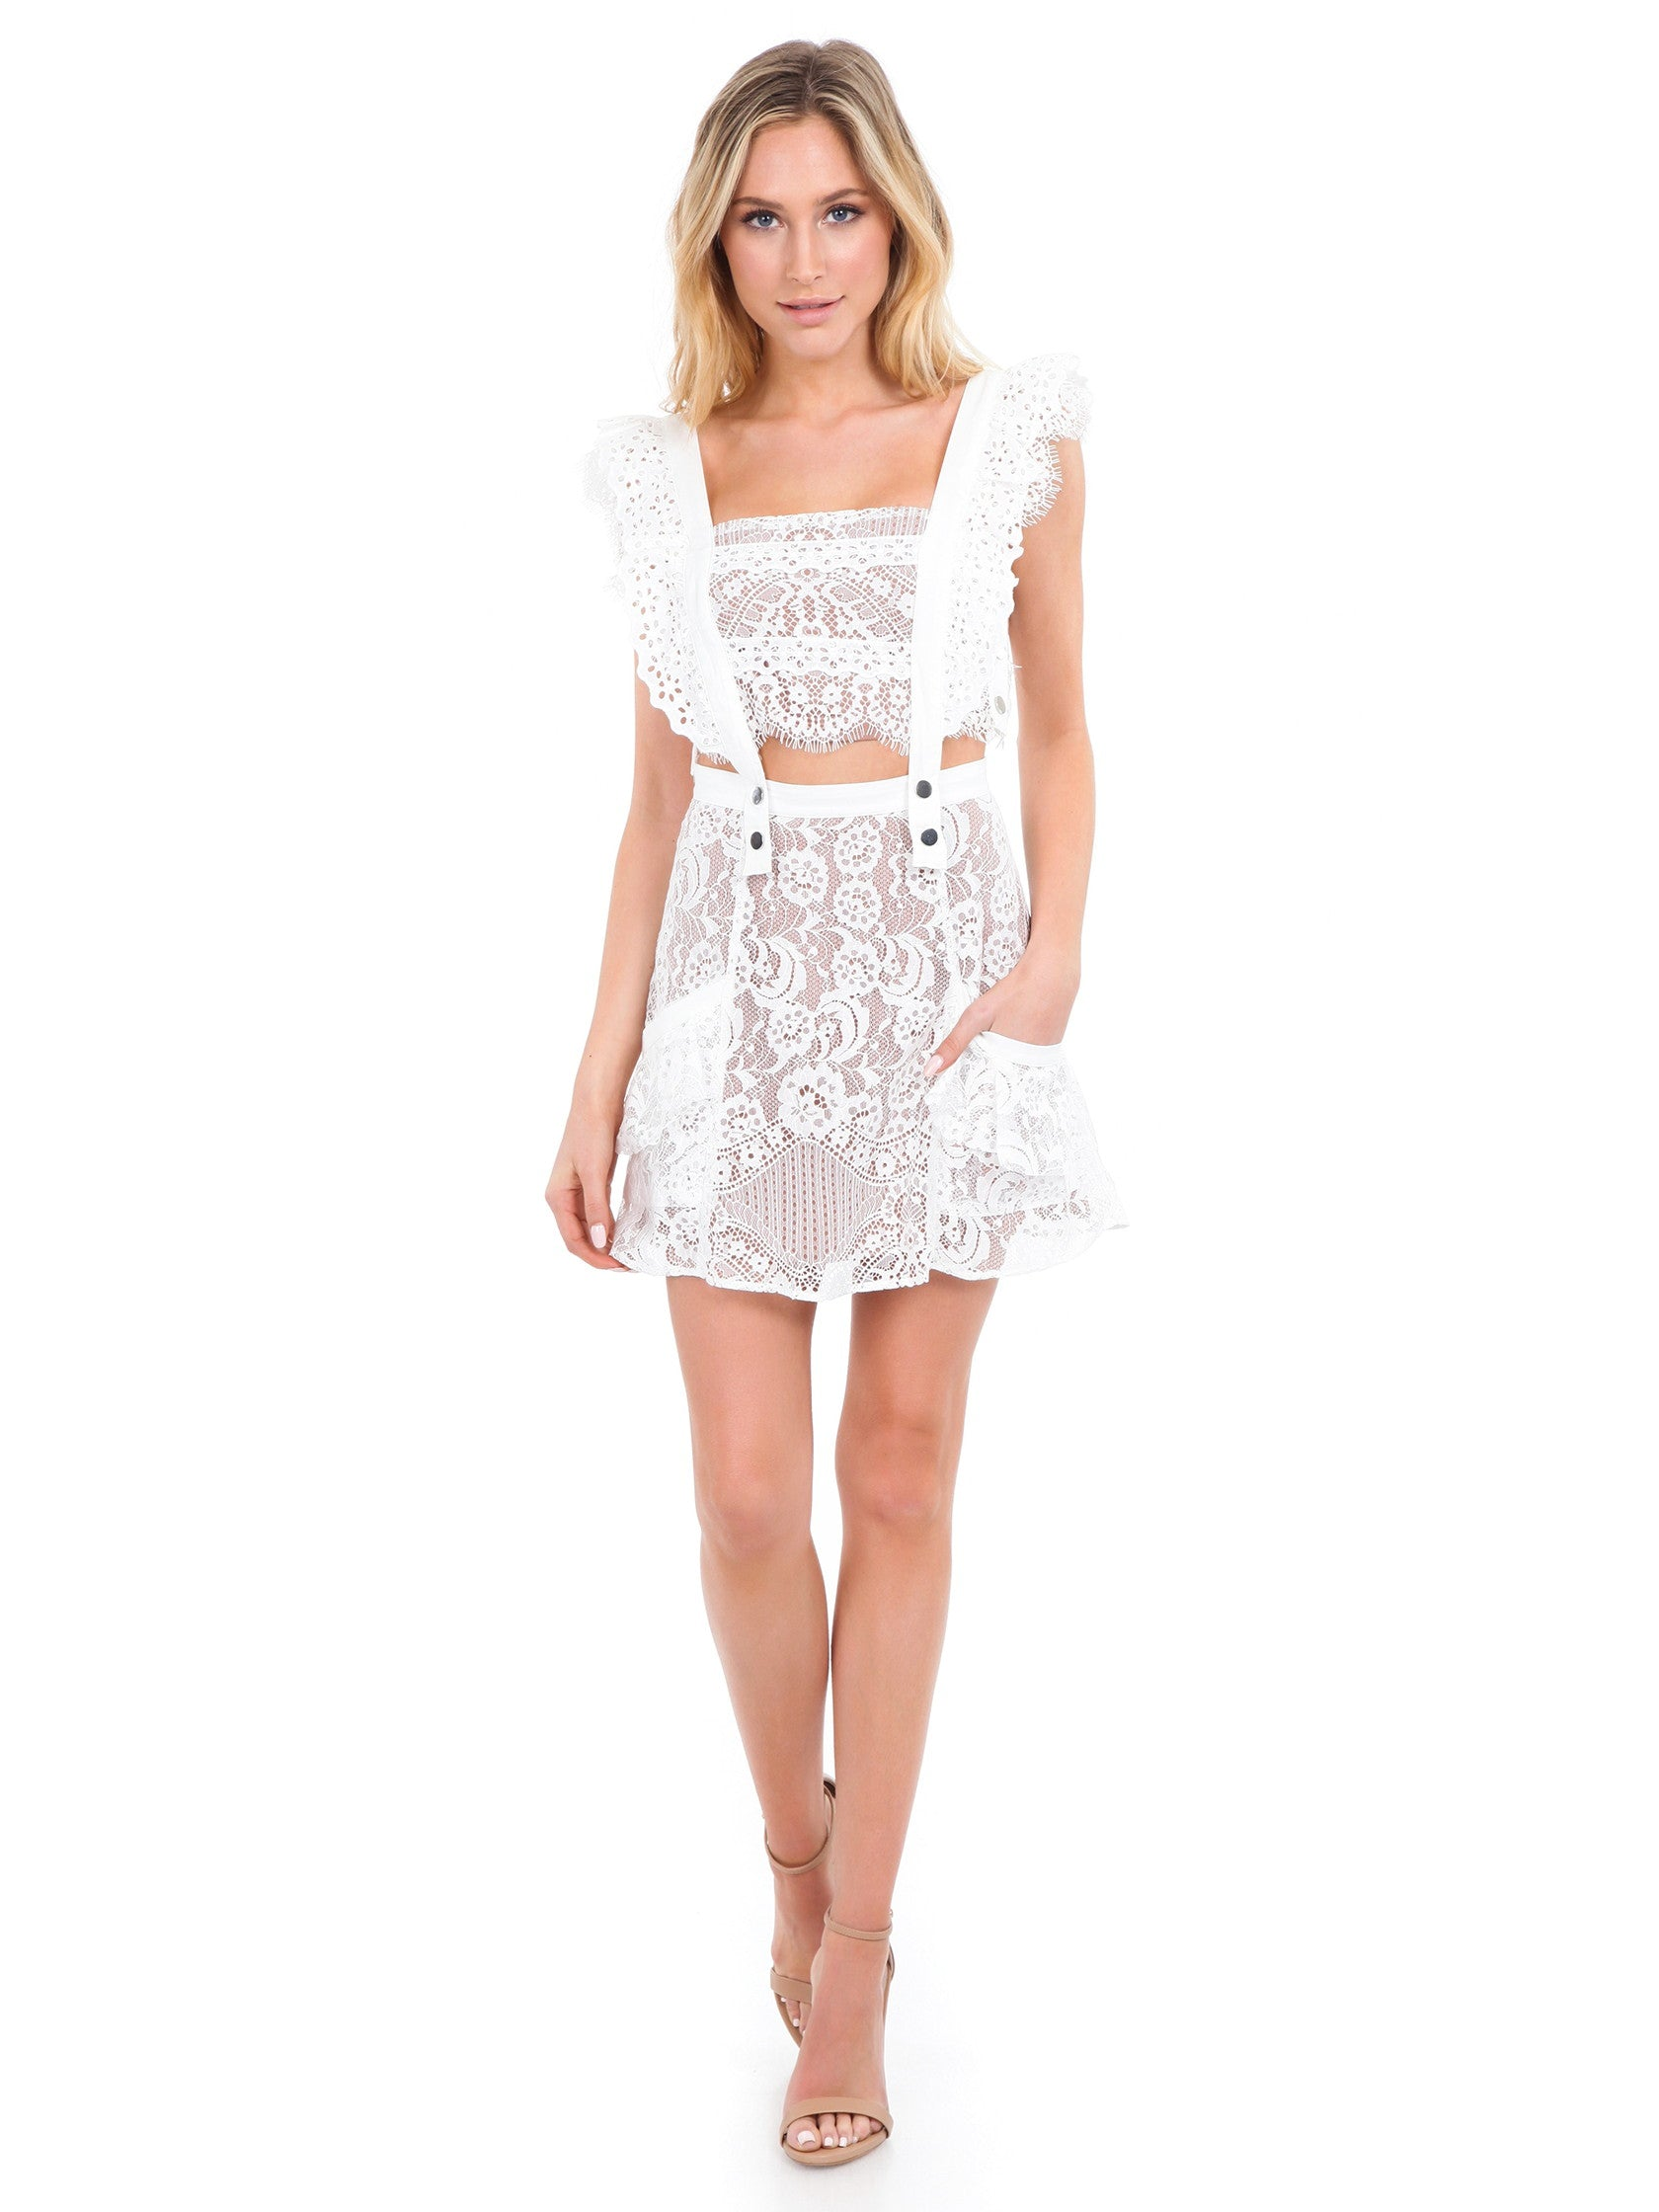 Woman wearing a dress rental from For Love & Lemons called Tati Pinafore Lace Dress